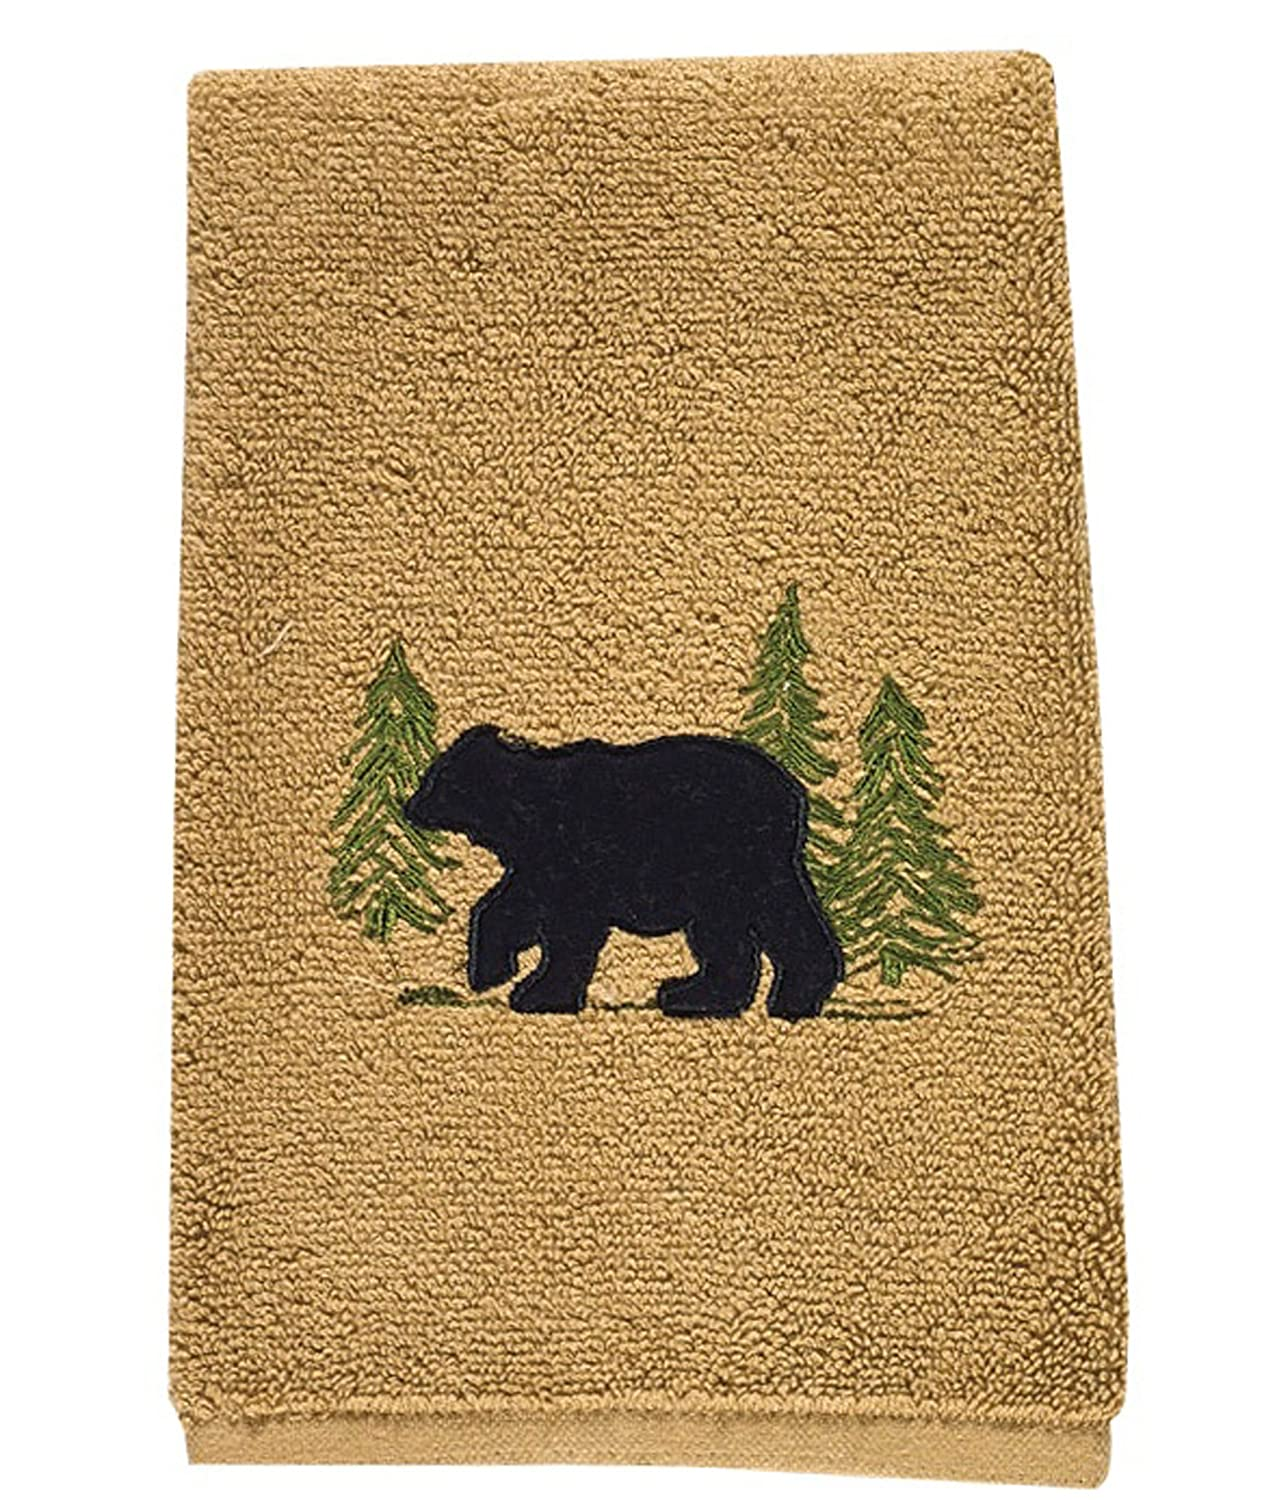 Park Designs 680-80 Black Bear Terry Fingertip Towel 19